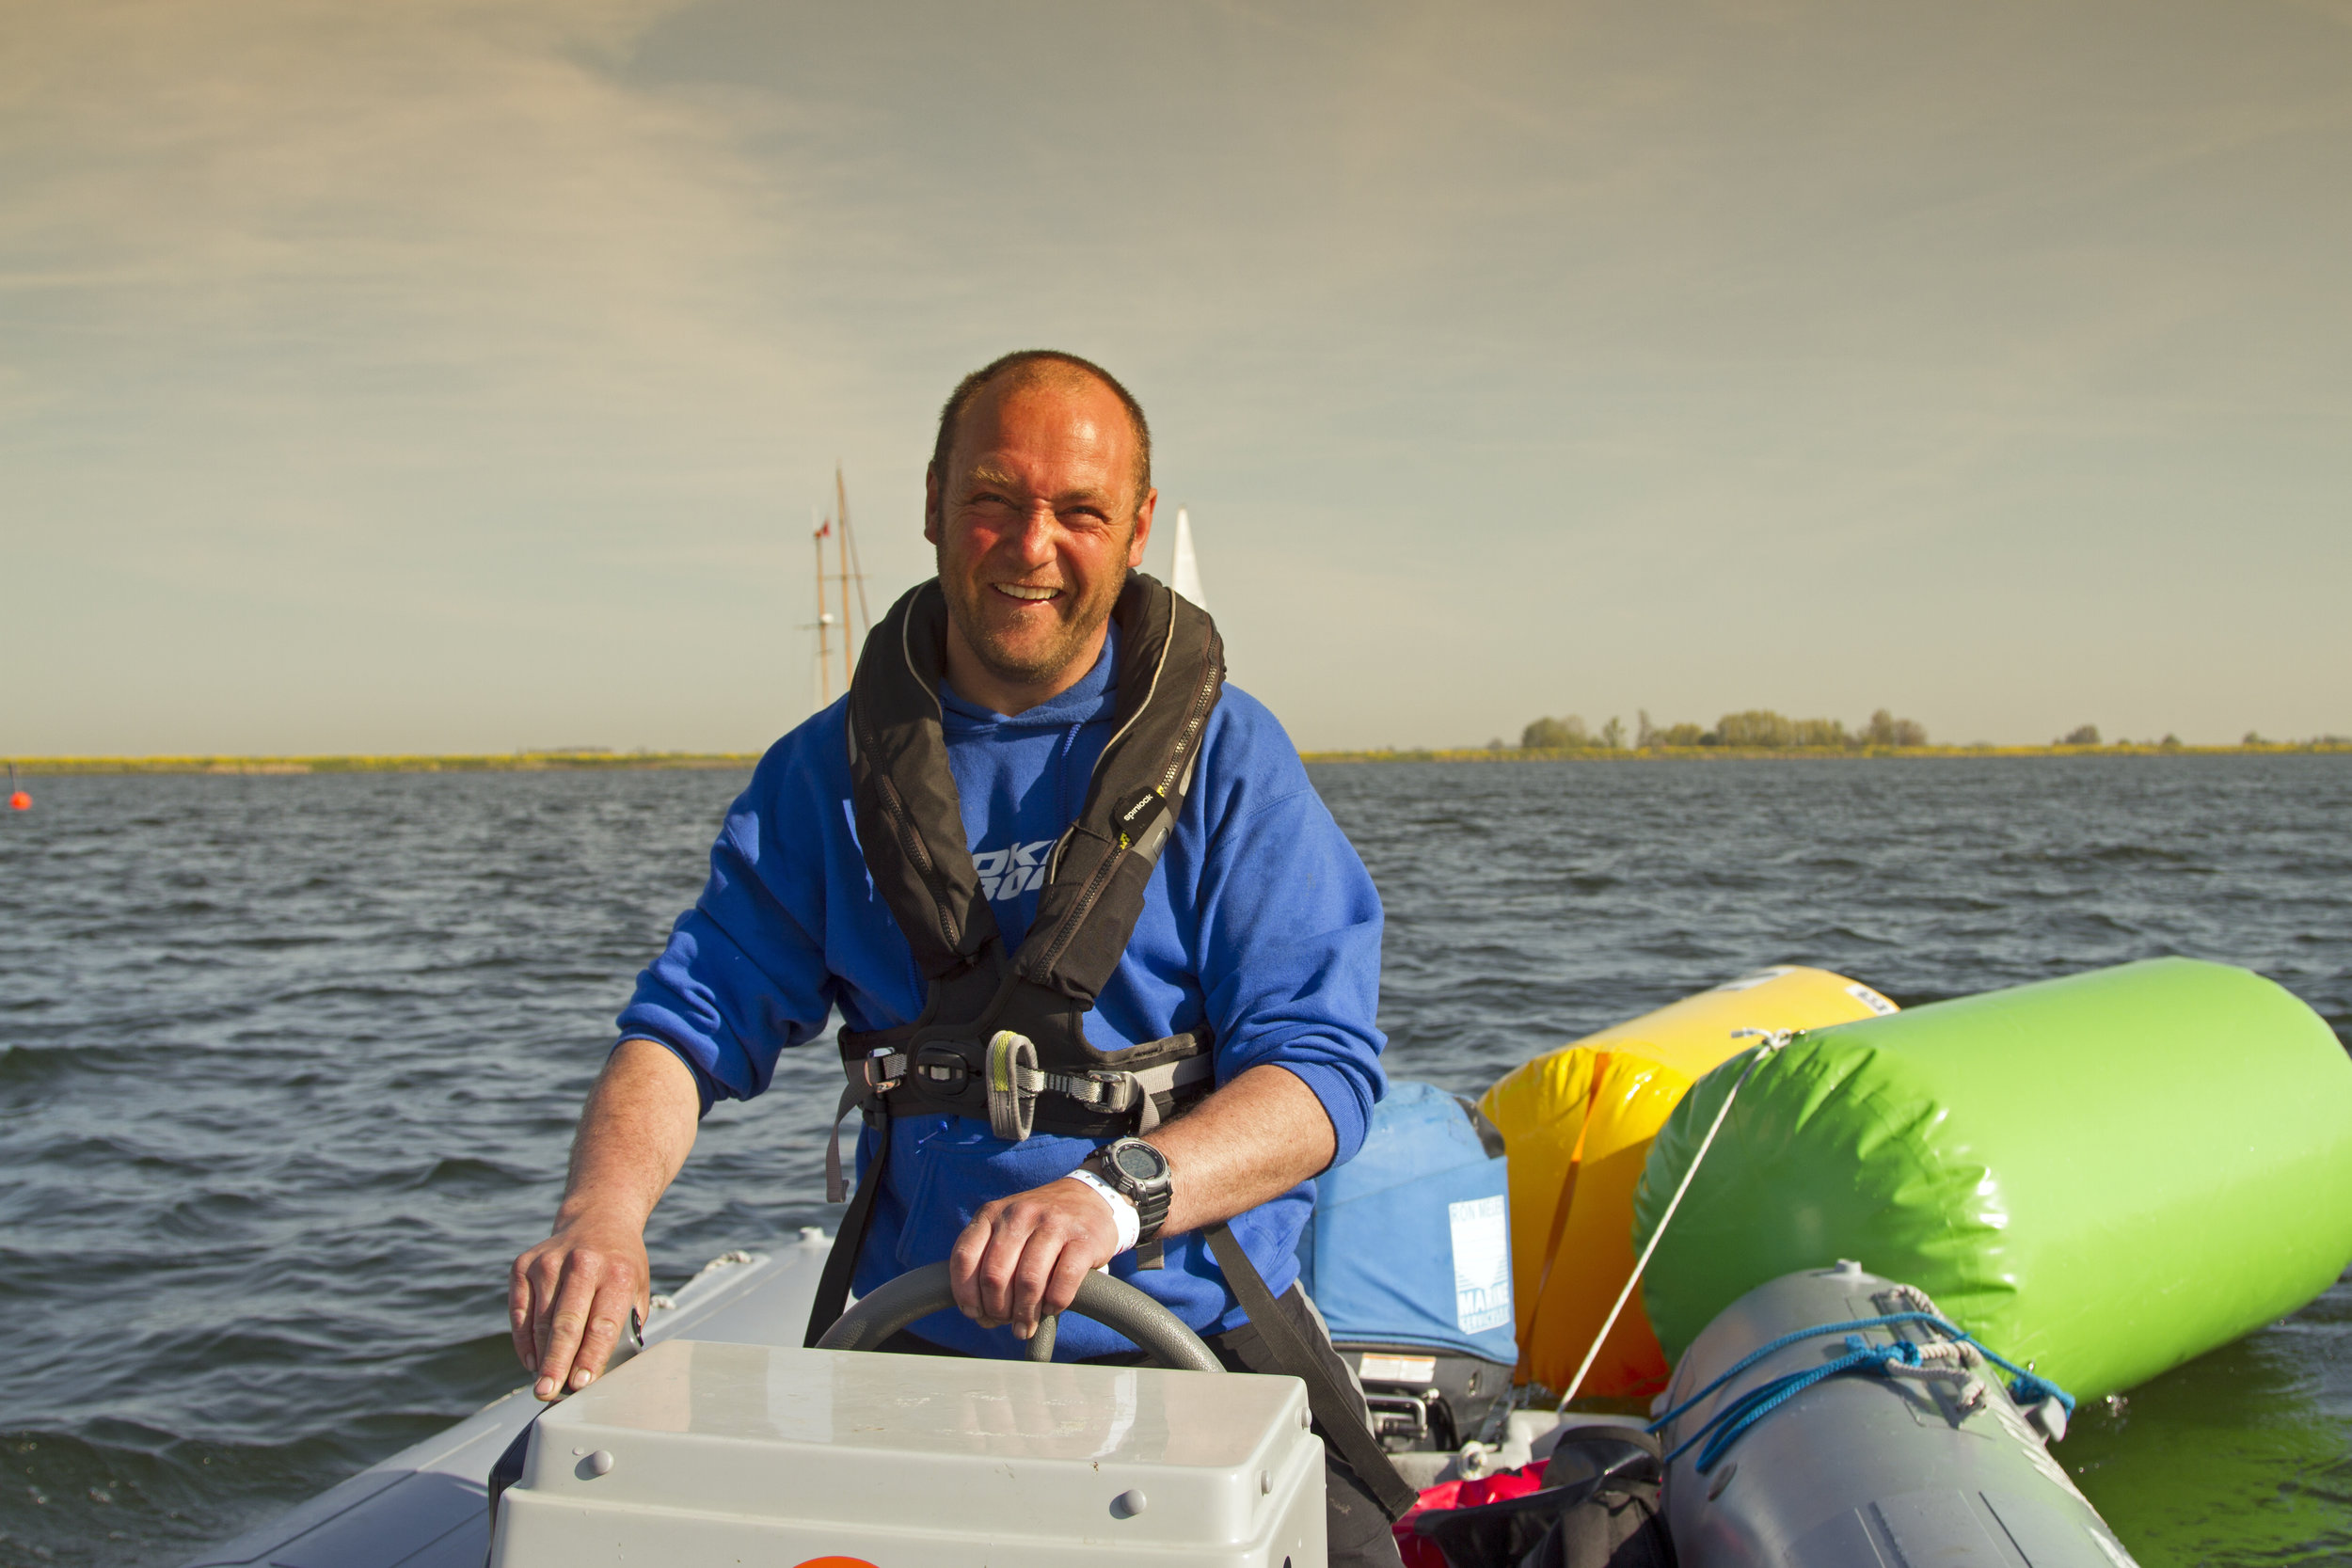 Michel in action in his rugged inflatable boat. (RIB)